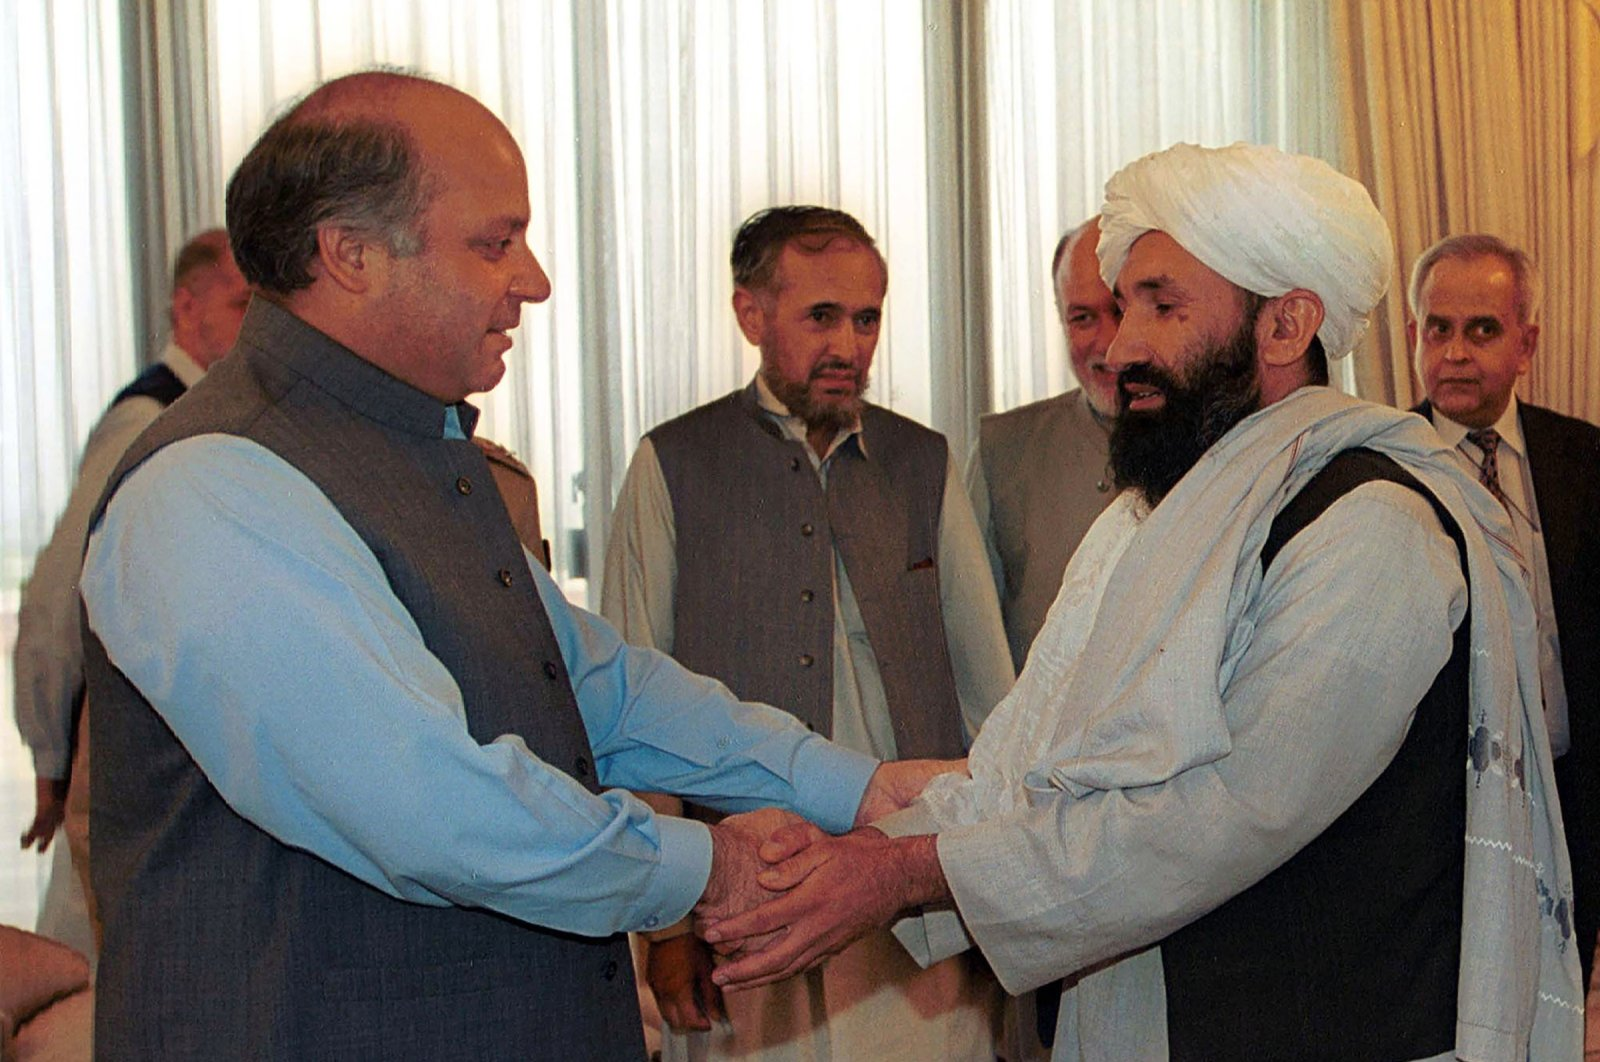 Mullah Mohammad Hasan Akhund (R), Afghanistan's then-foreign minister, is received by Pakistani then-Prime Minister Nawaz Sharif, in Islamabad, Pakistan, Aug. 25, 1999. (AP File Photo)